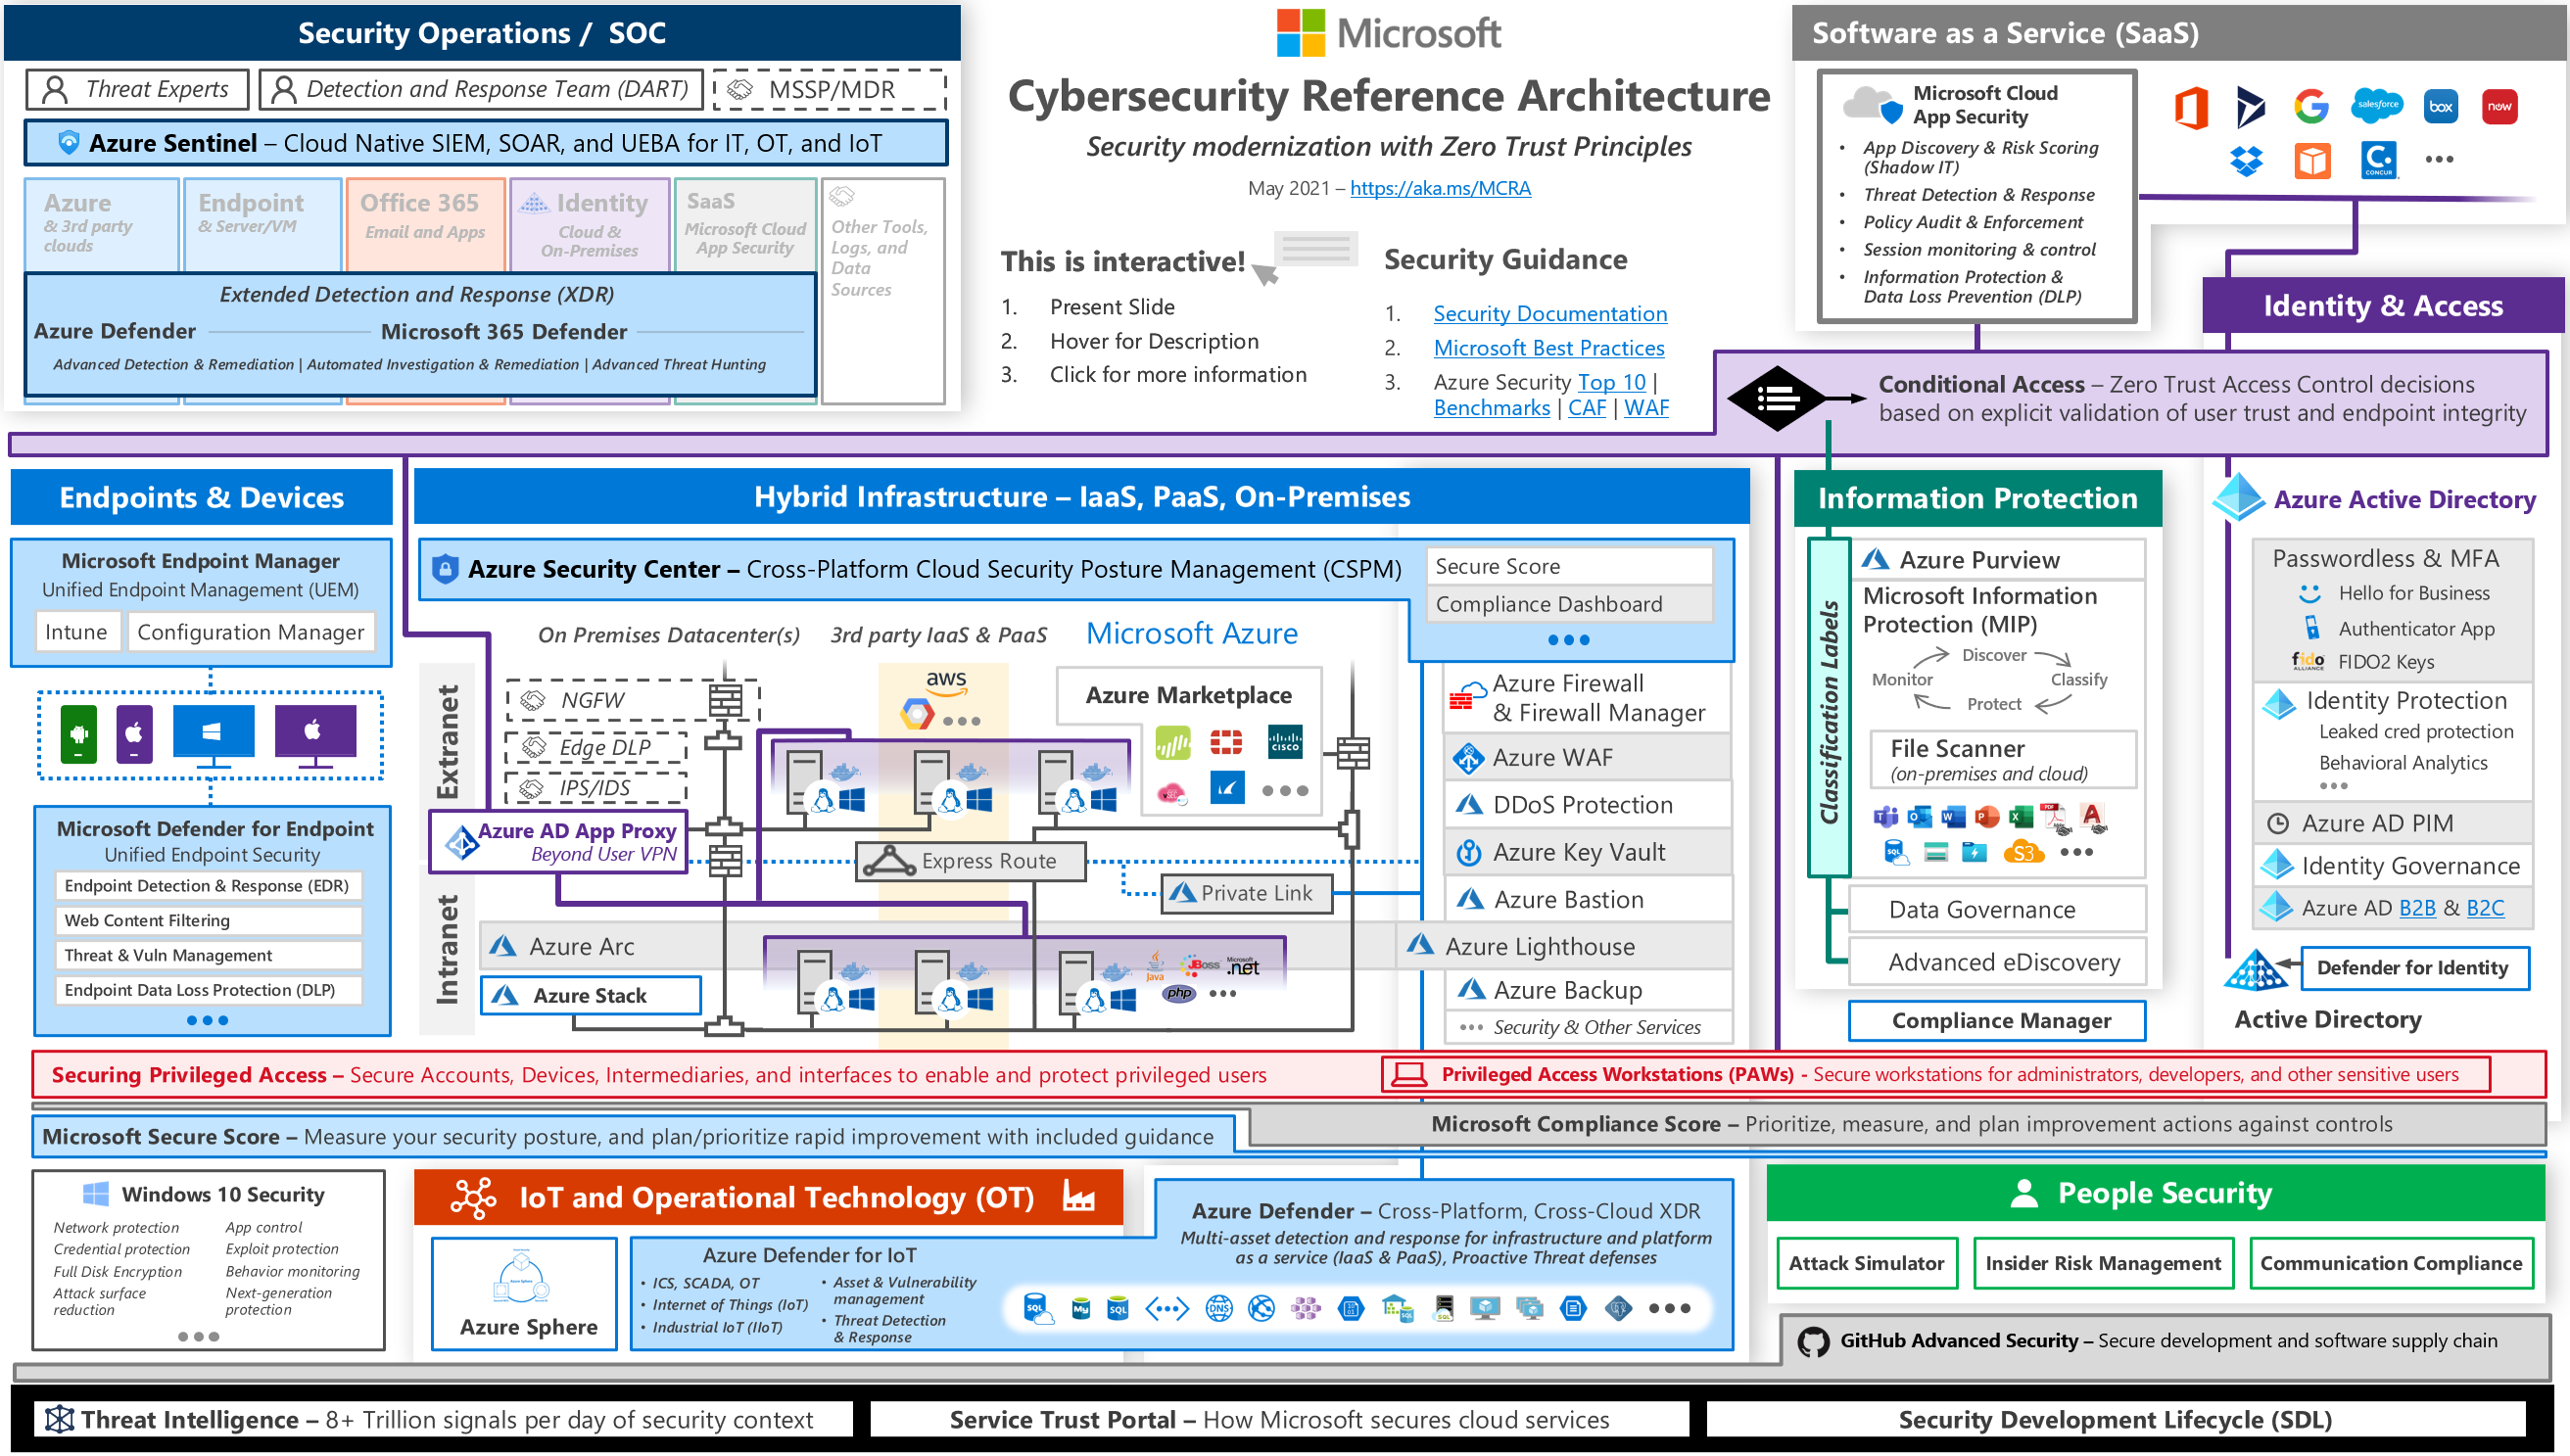 Microsoft Cybersecurity Reference Architecture (May 2021)